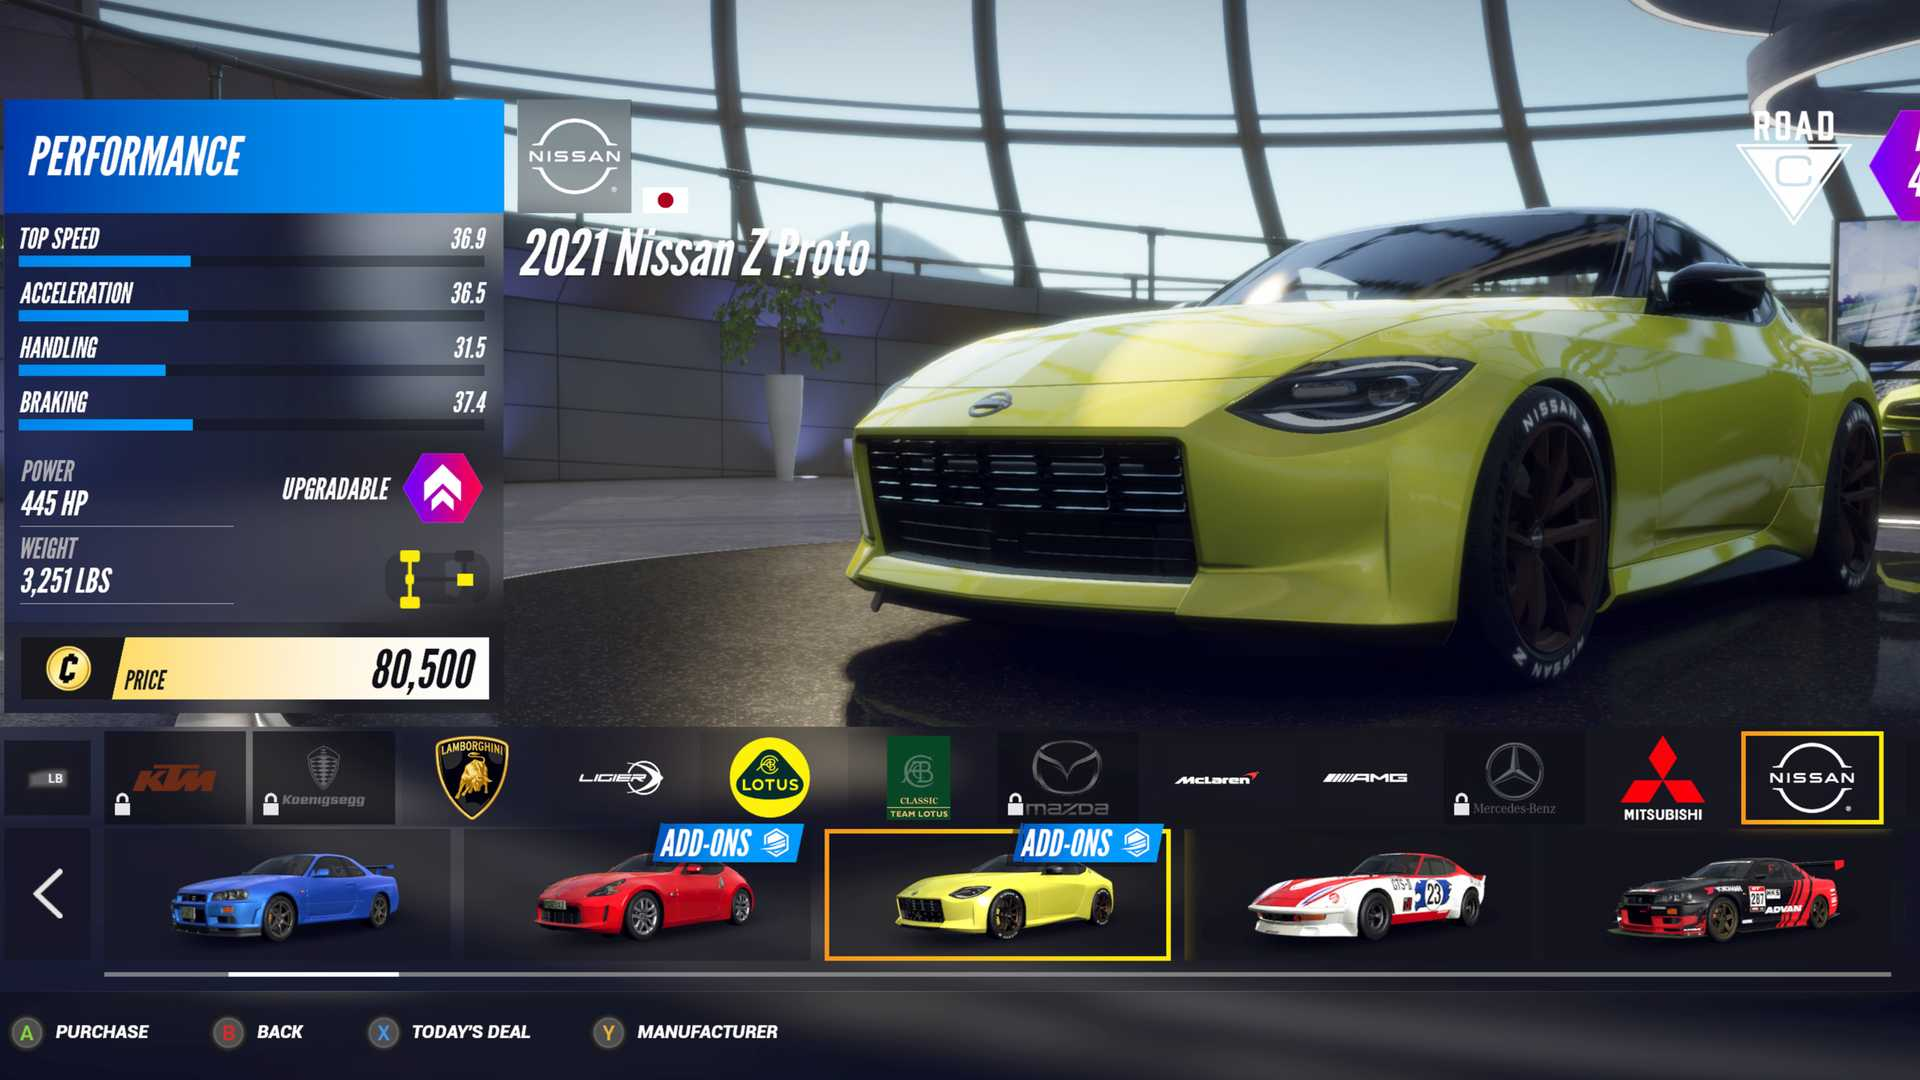 Nissan Z Proto Shows Up In Project Cars 3 With 445 Horsepower - Motor1